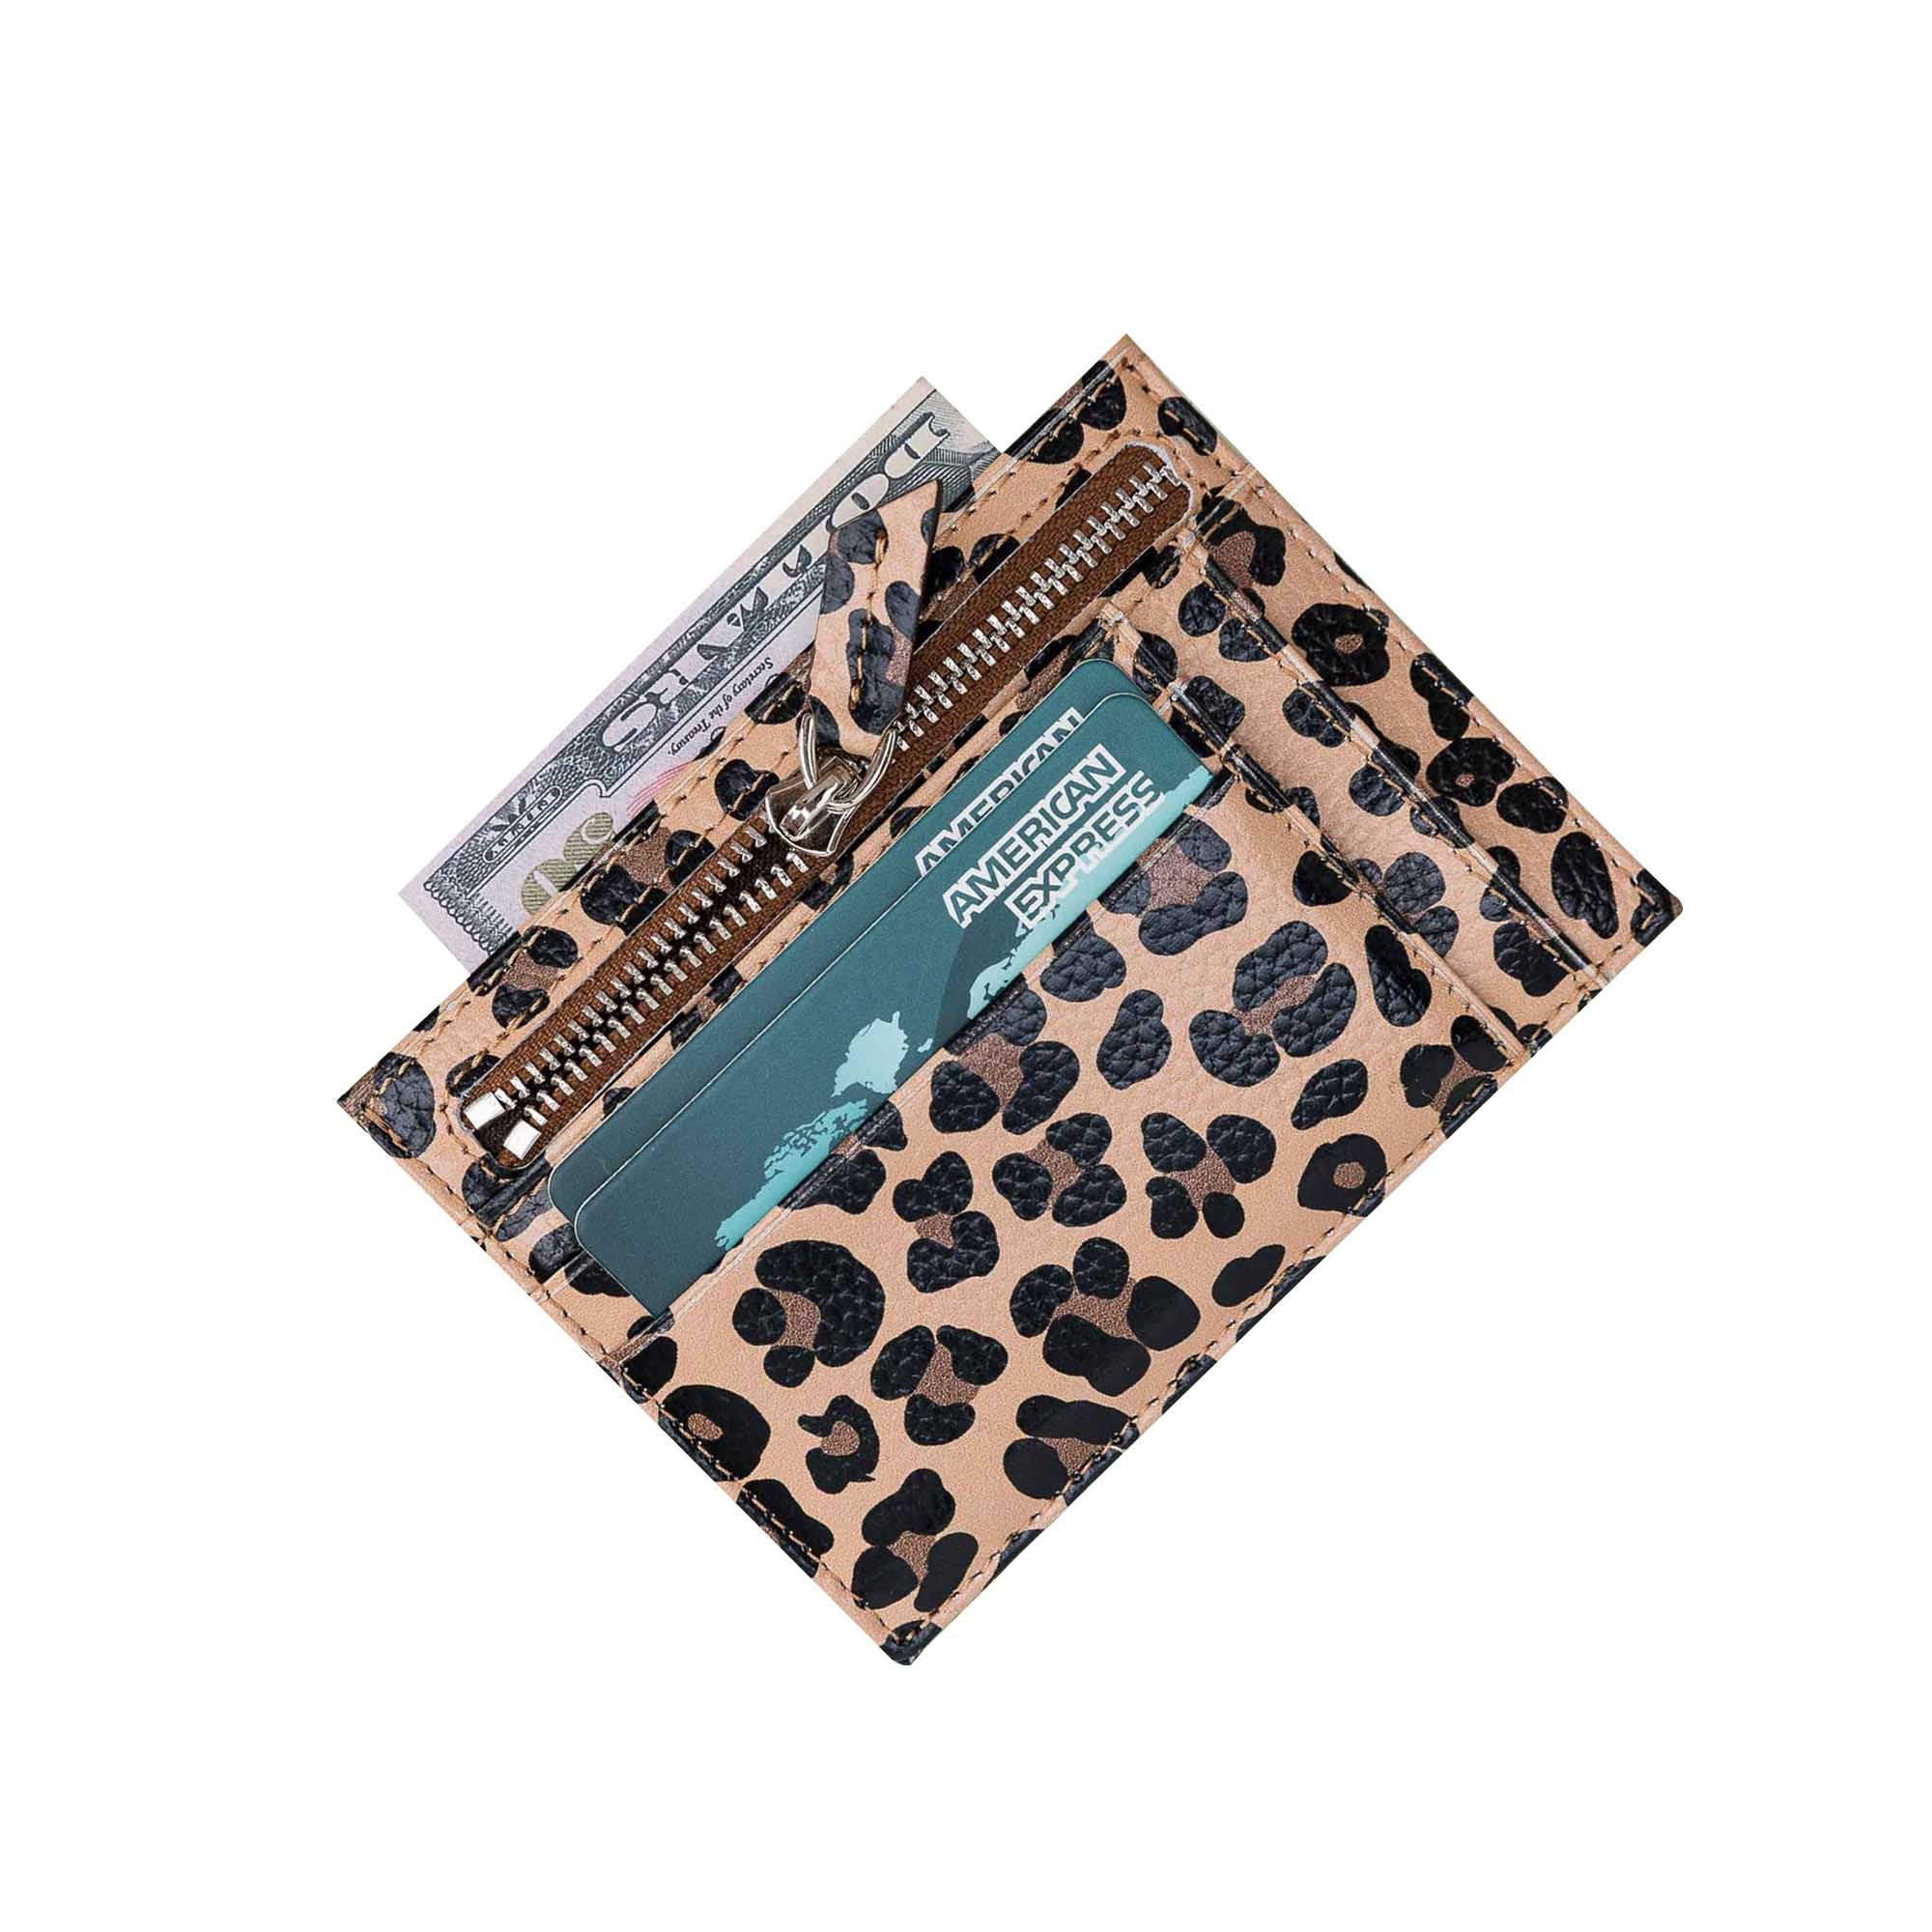 Slim Zipper Leather Wallet - LEOPARD PATTERNED